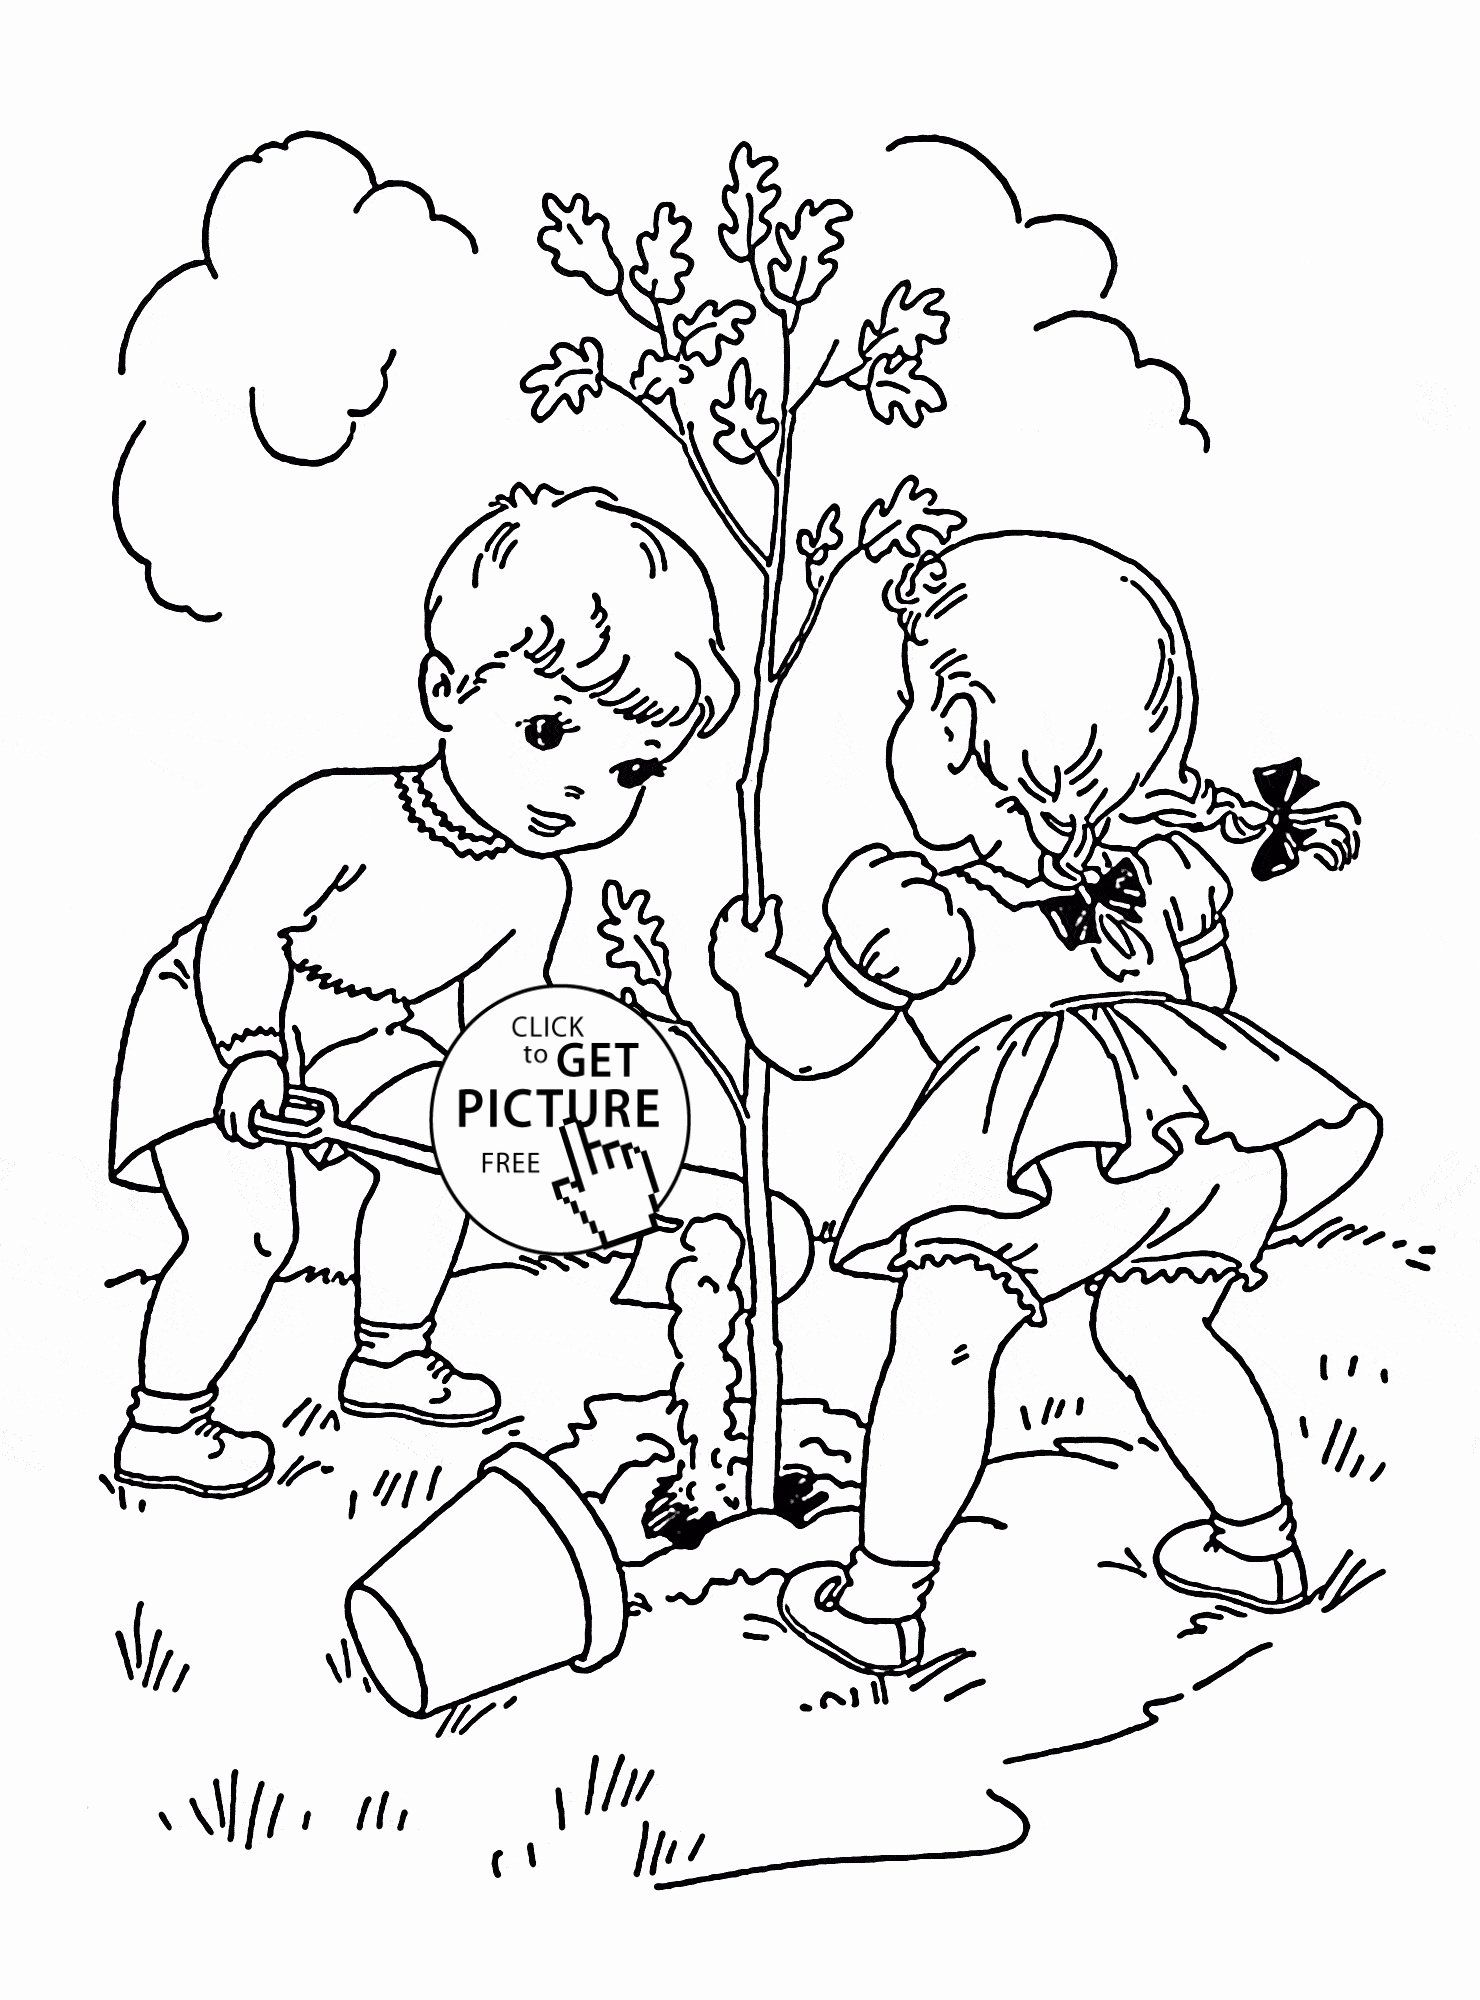 Scarecrow Face Coloring Page Luxury Scarecrow Coloring